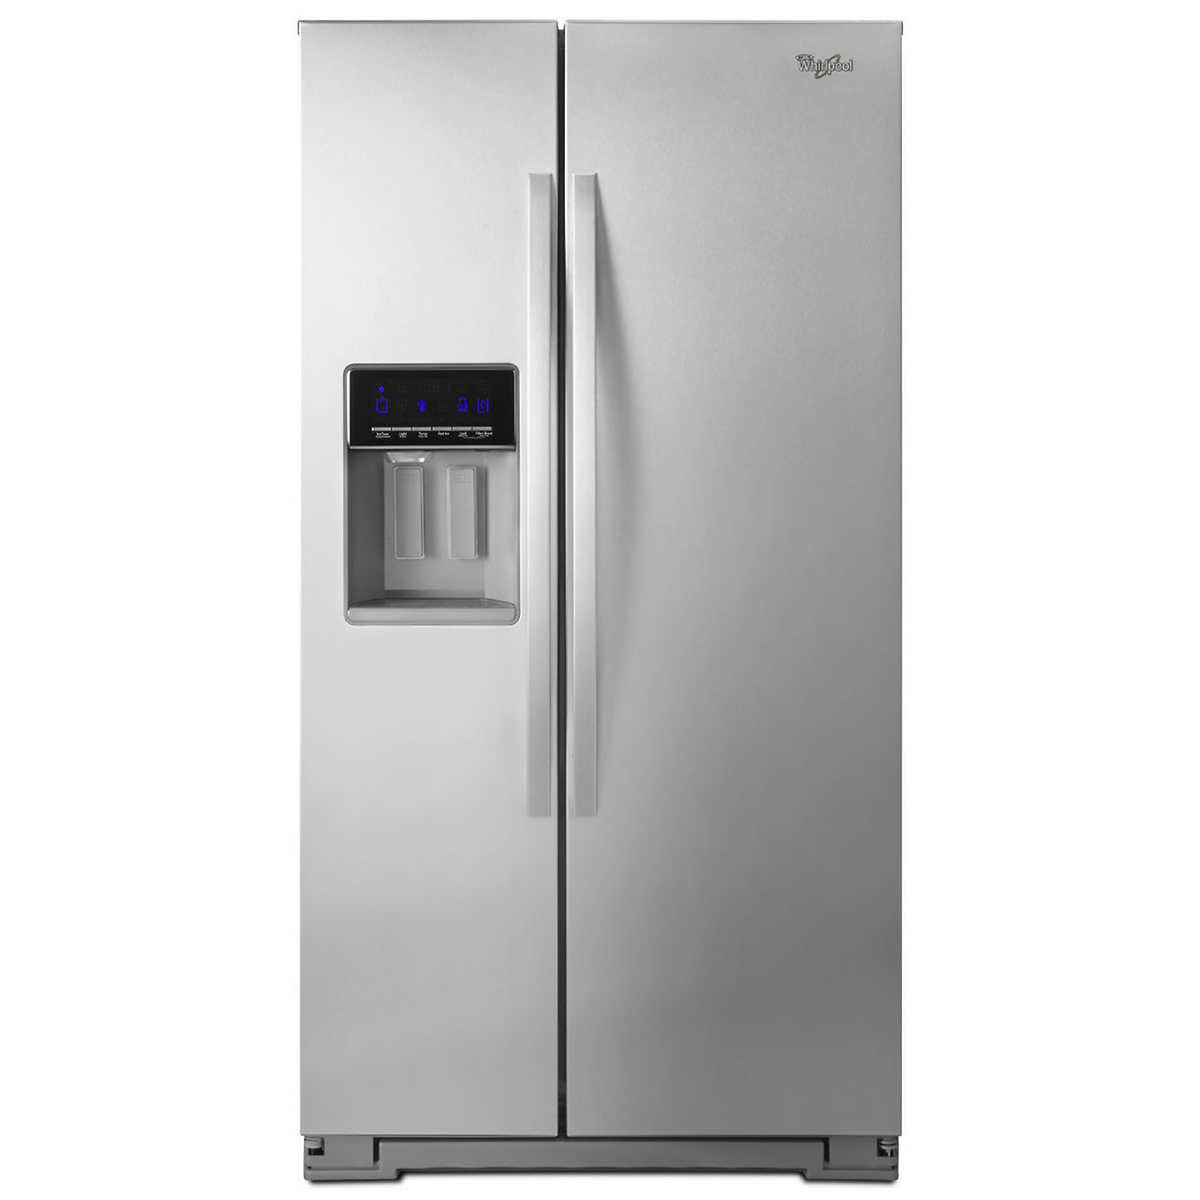 Whirlpool white ice costco canada - Whirlpool 21cuft Counter Depth Side By Side Refrigerator In Stainless Steel